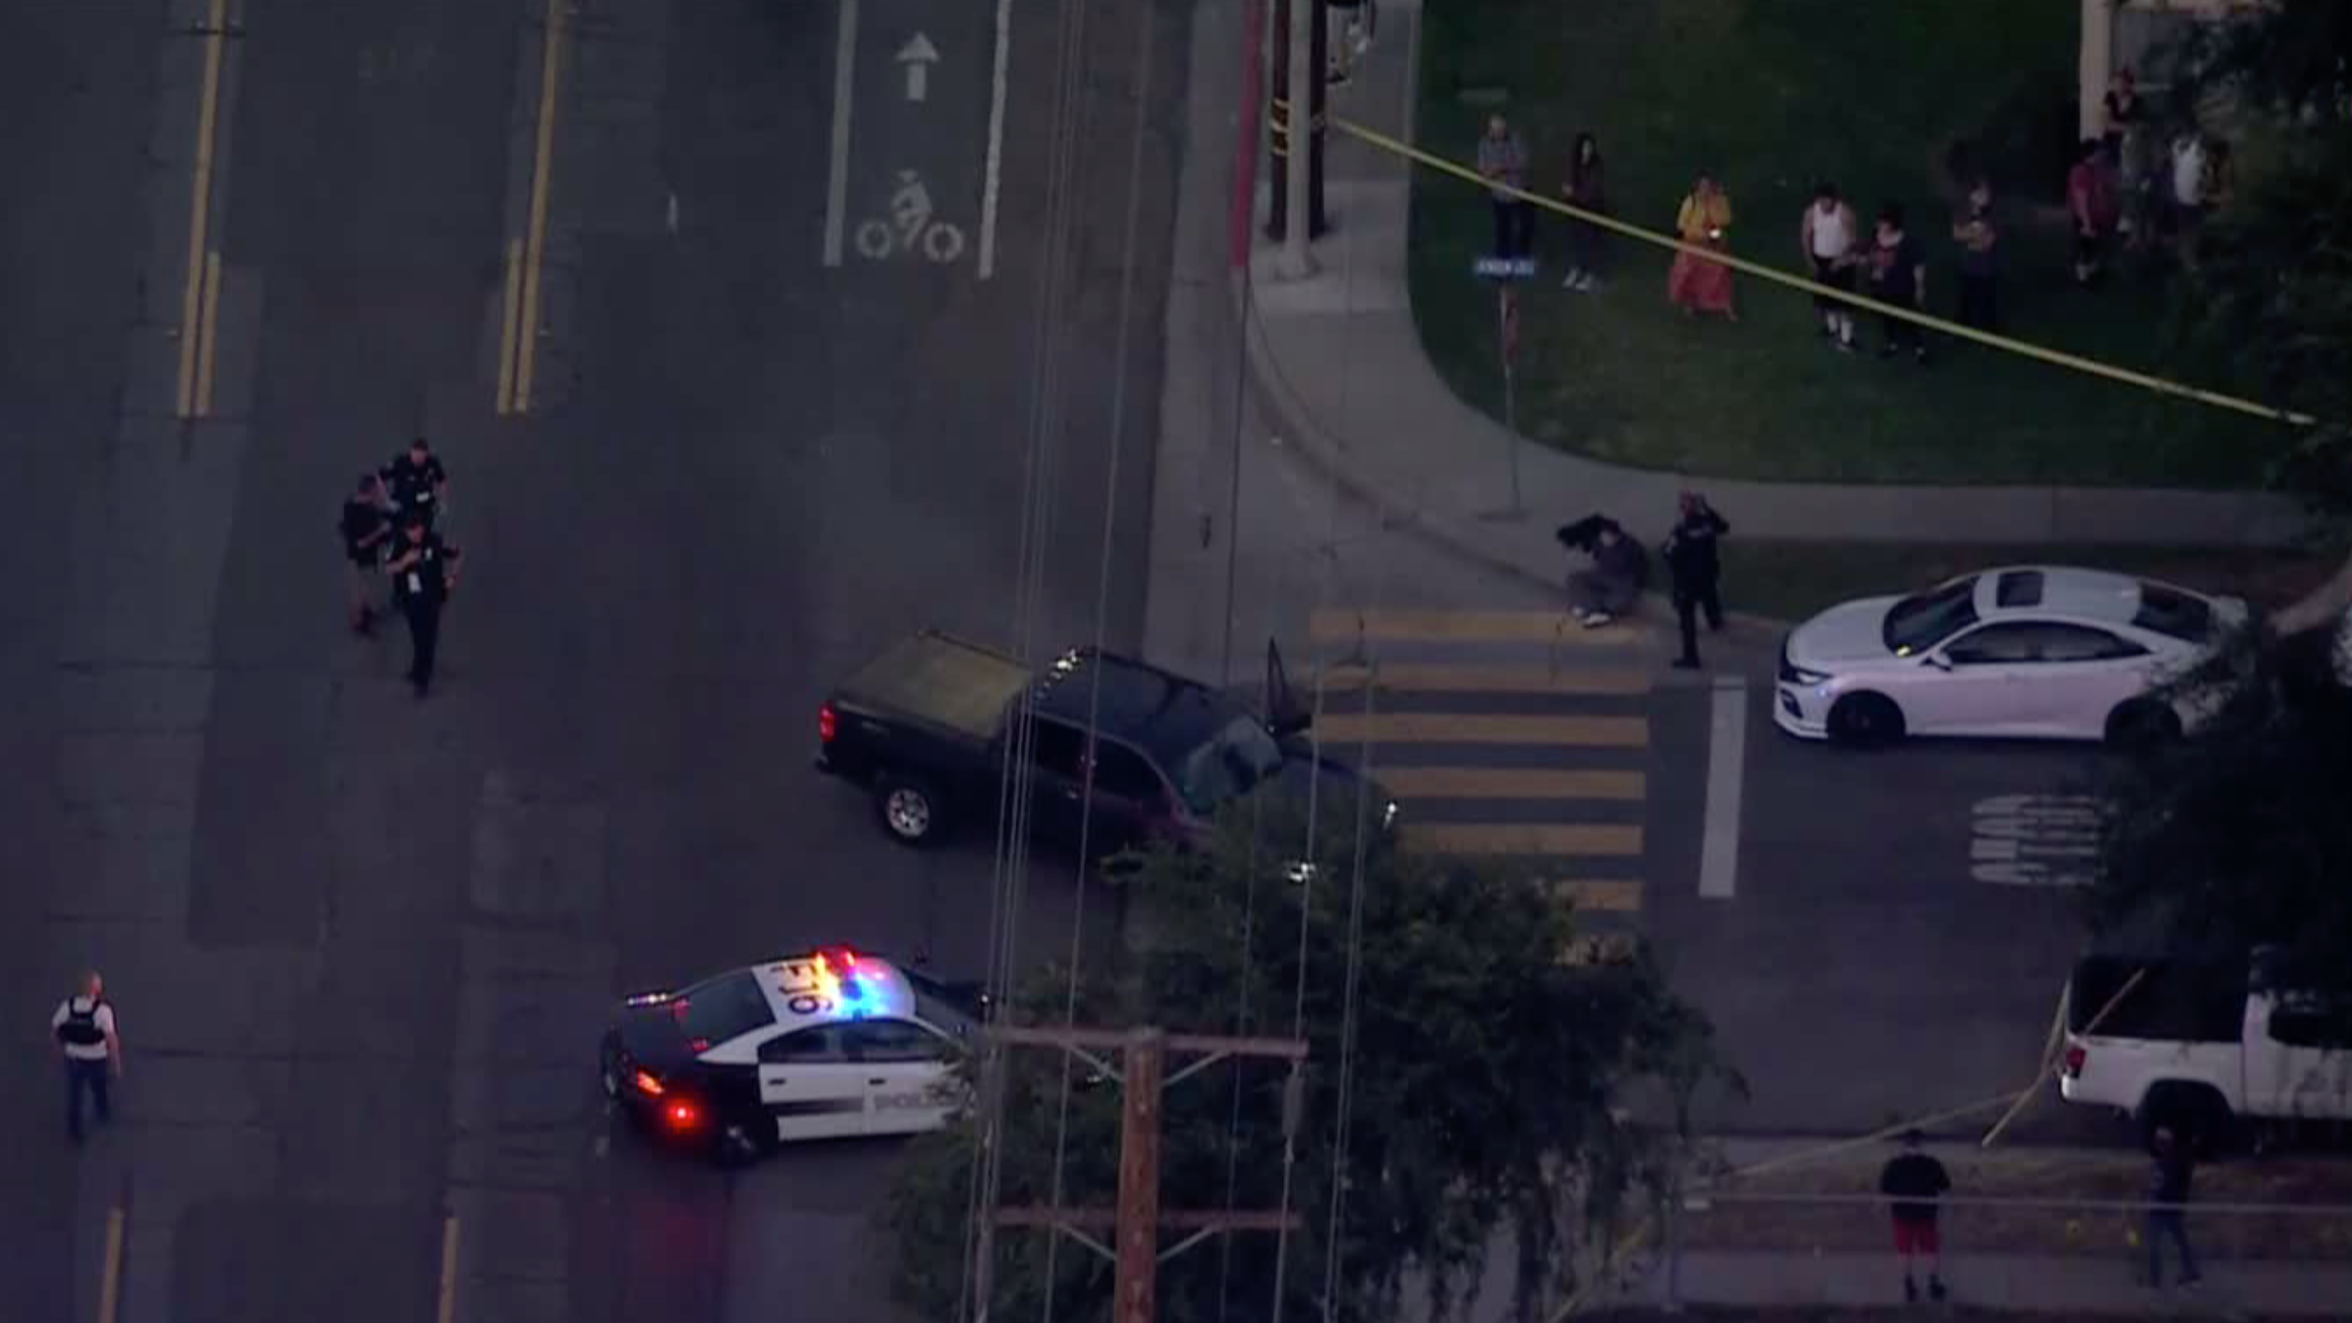 Authorities respond to investigate after a car crashed into a structure and a person was killed in a shooting in Fullerton on May 28, 2021. (KTLA)